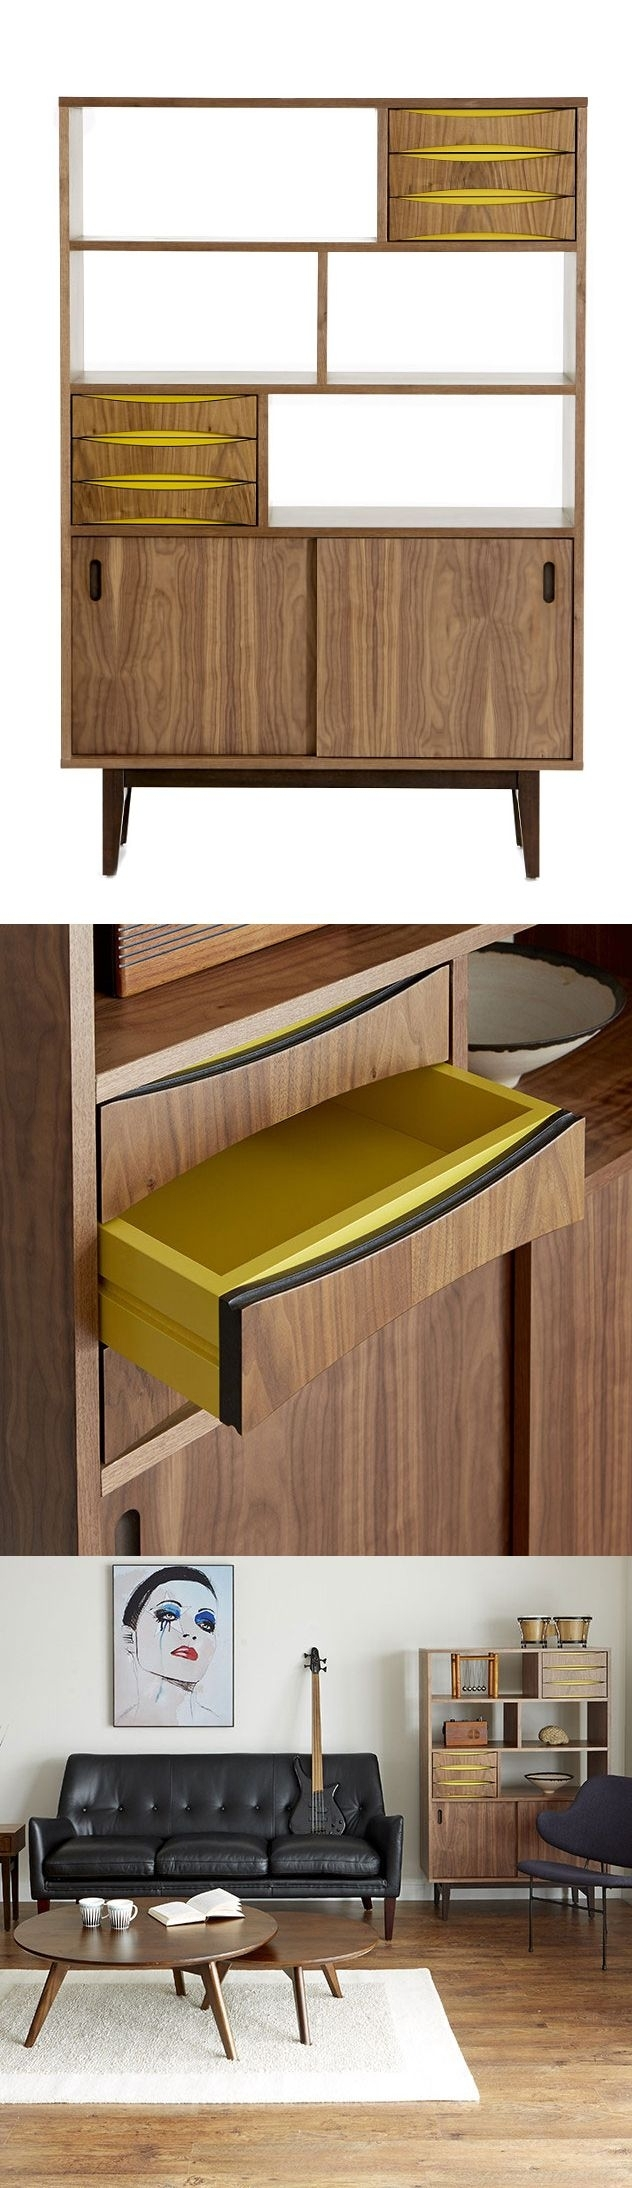 111 Best Holzdesign Images On Pinterest | Wood, Woodworking And Intended For Most Current Burnt Tannin 4 Door Sideboards (#3 of 20)